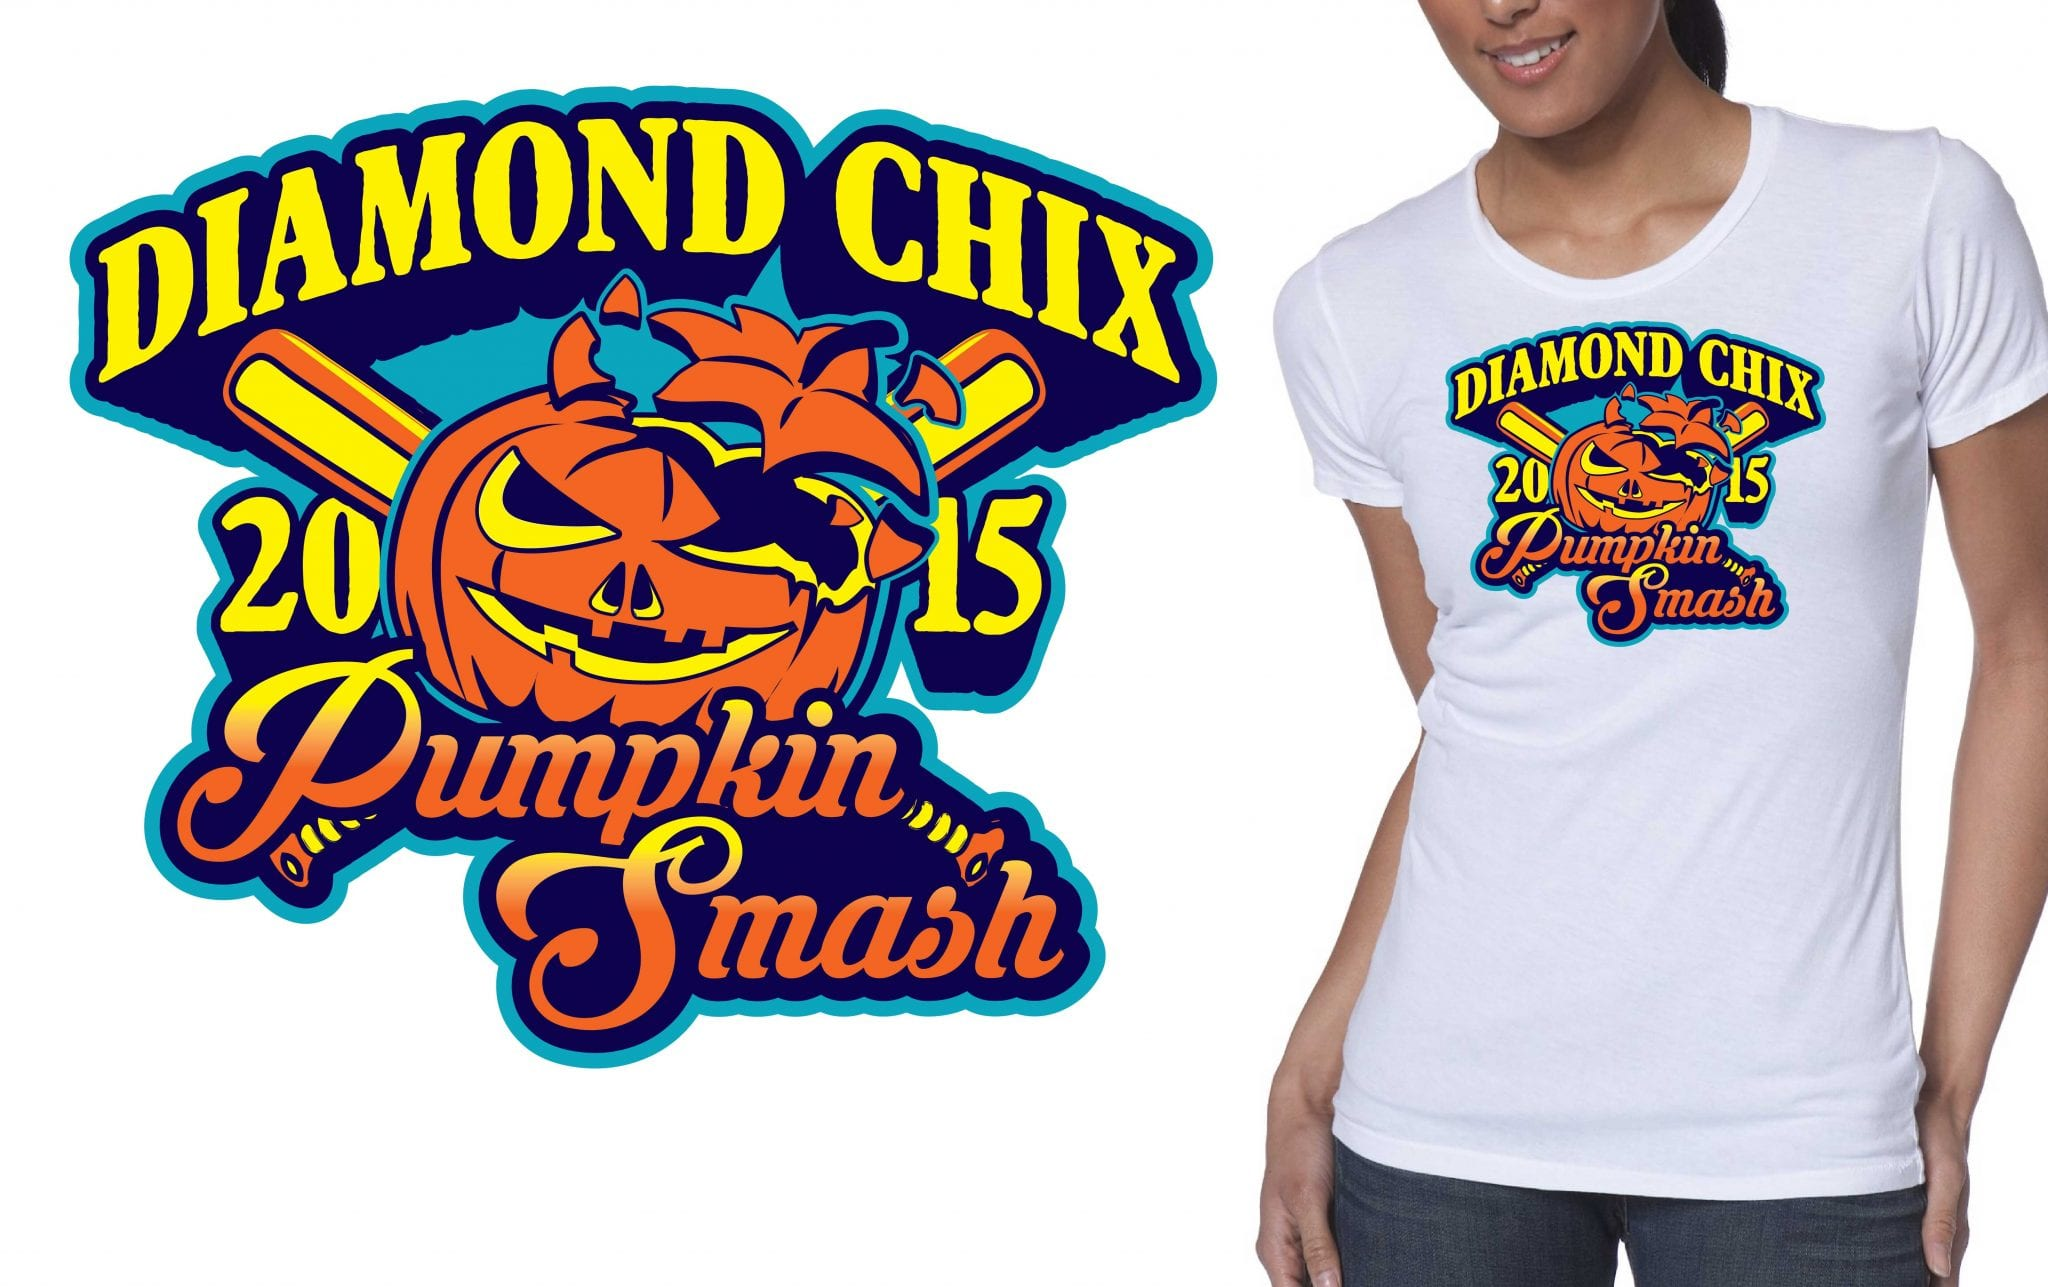 Diamond Chix Pumpkin Smash crazy tshirt logo design